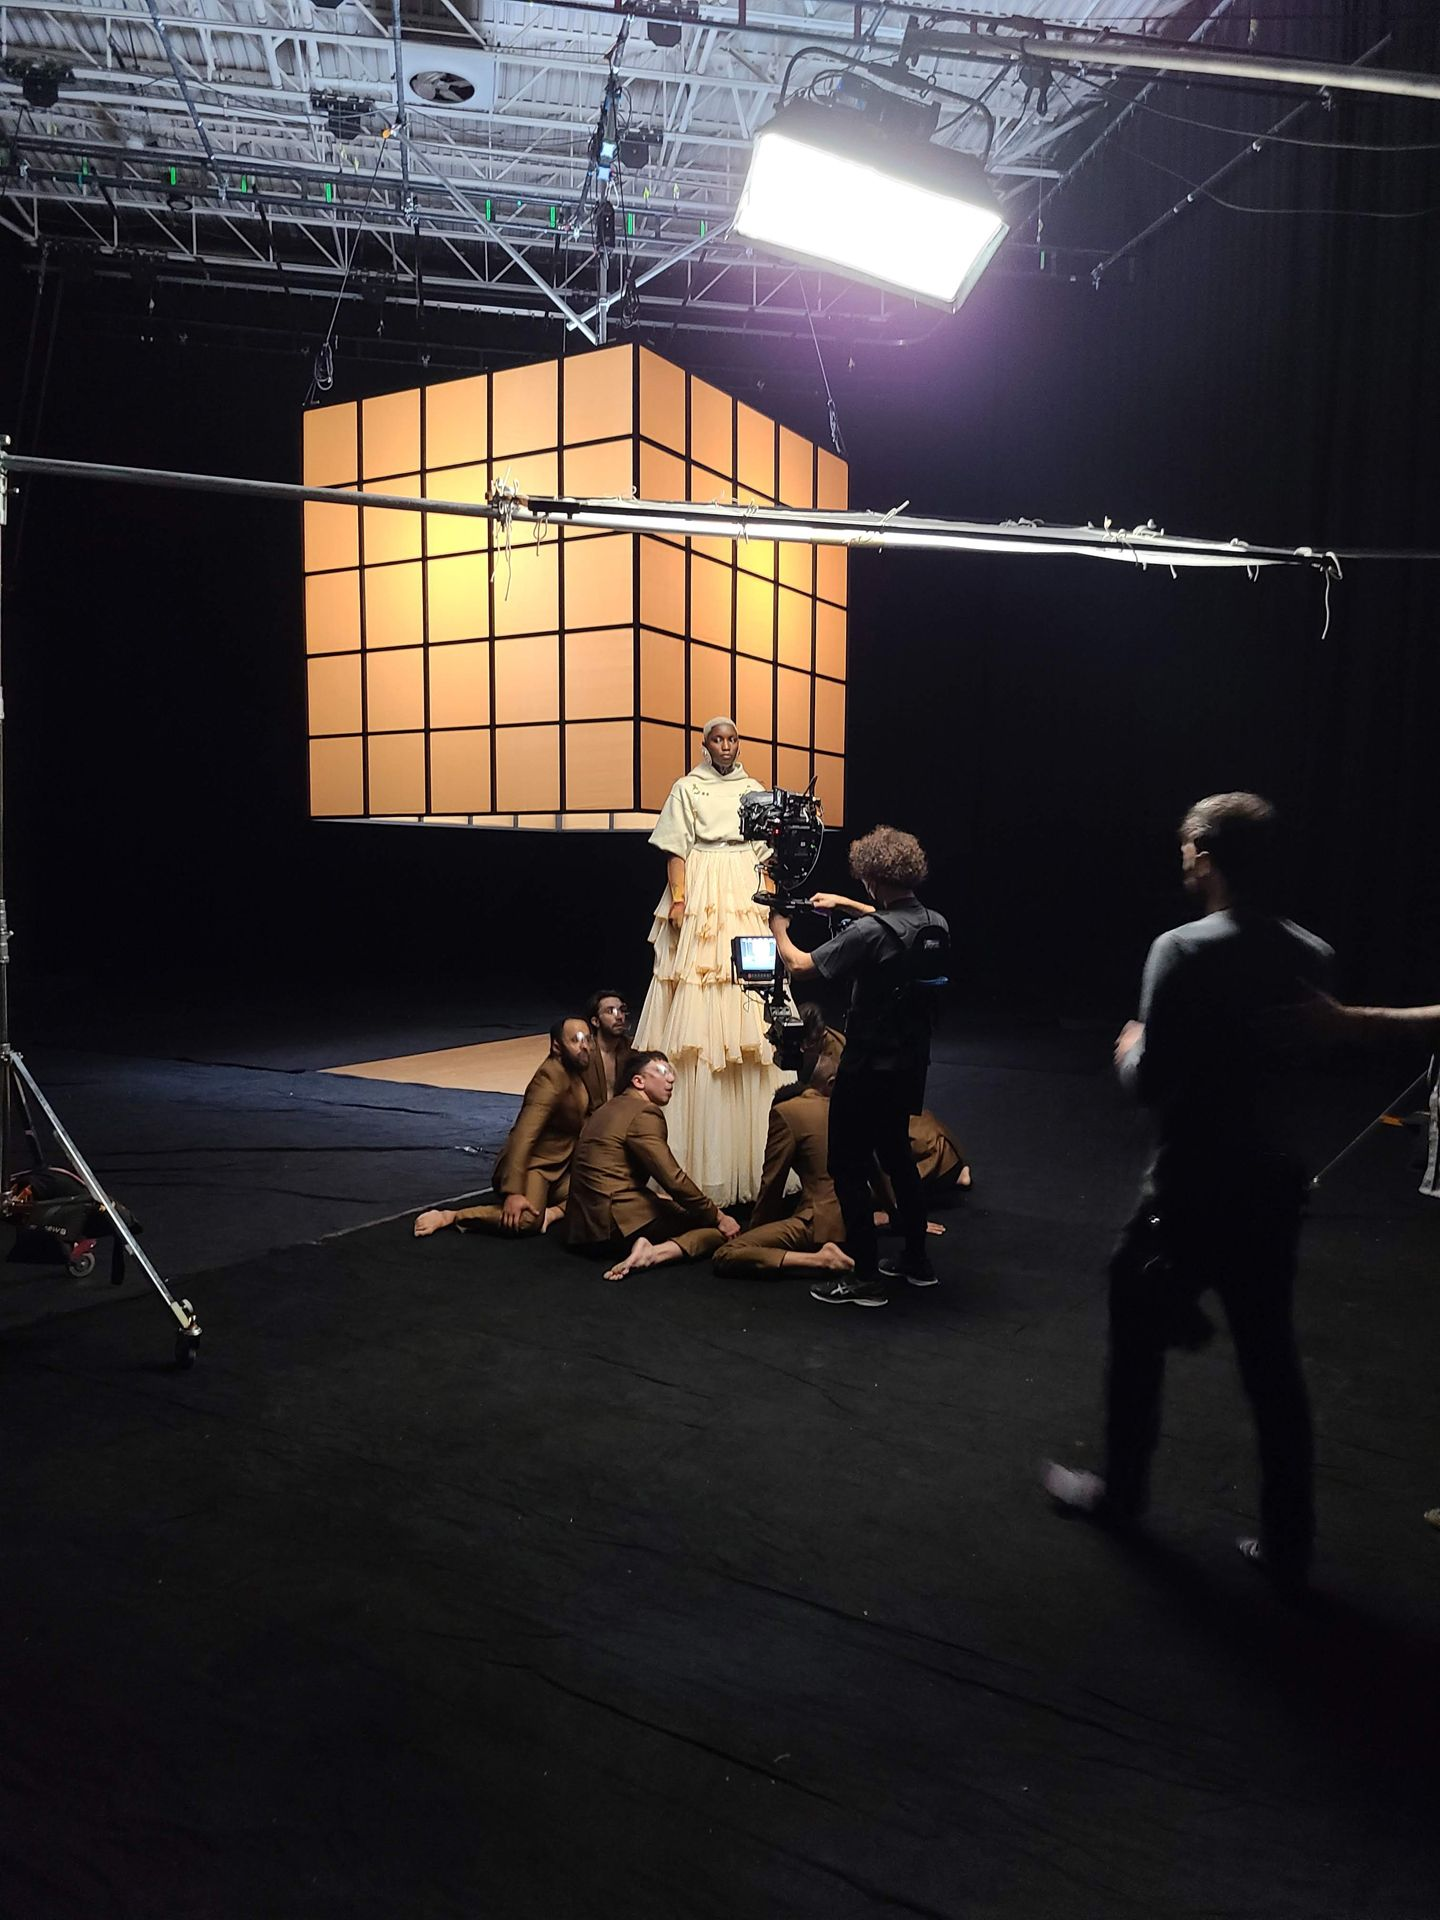 Behind the scenes image in a black studio, the cameraman is filming Sarahmée standing on a pedestal with the dancers sitting around her.